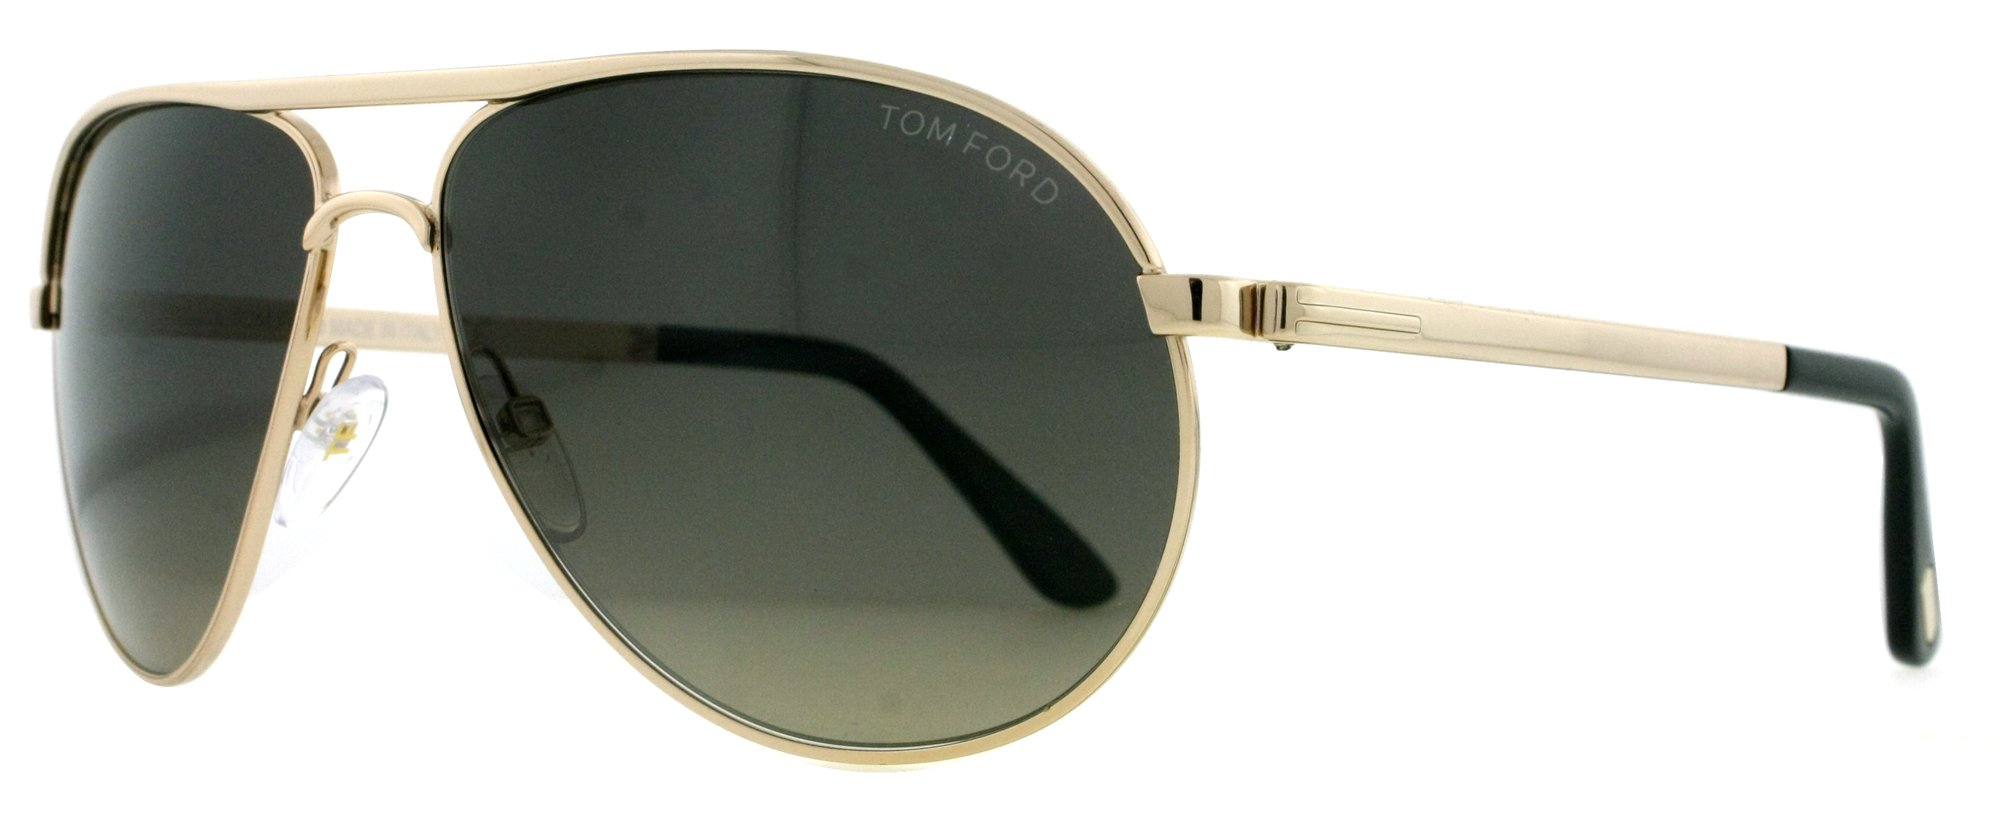 Tom Ford 0144 28D Silver 0144s Aviator Sunglasses Polarised Lens Category 3, Shiny Rose Gold, 58-13-140